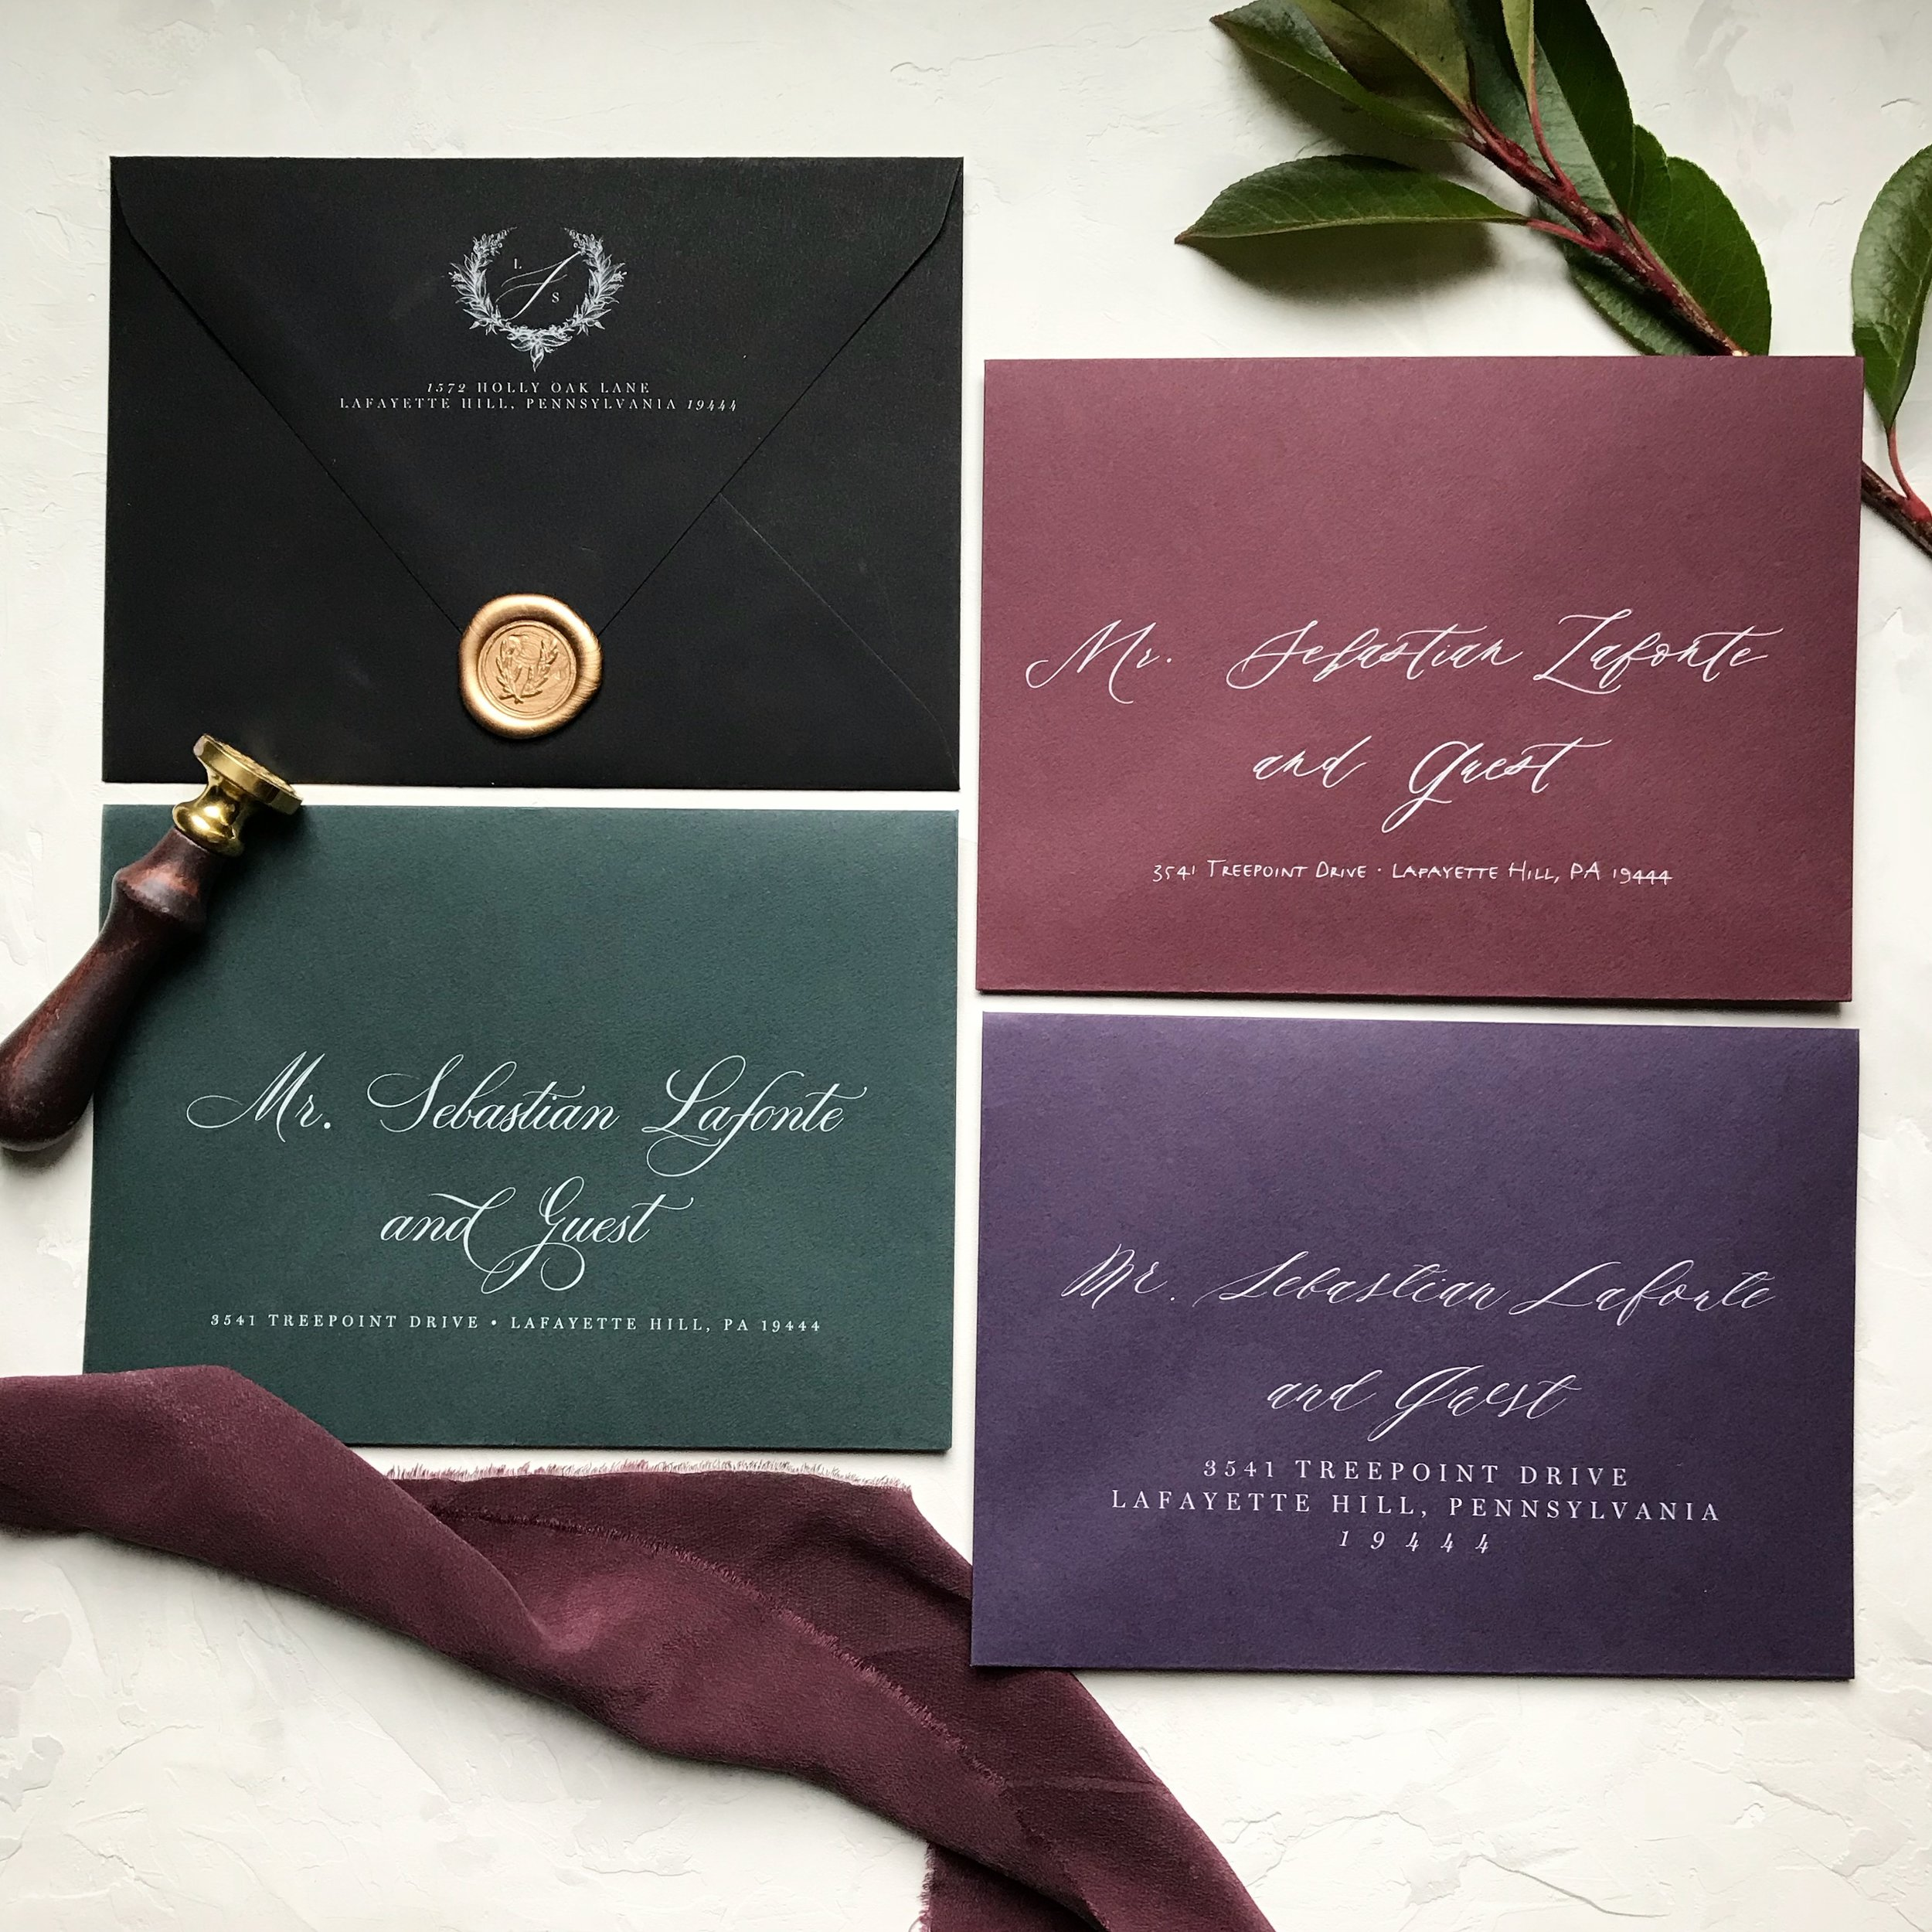 Gorgeous digital white ink calligraphy. A perfect option for dark-colored envelopes.